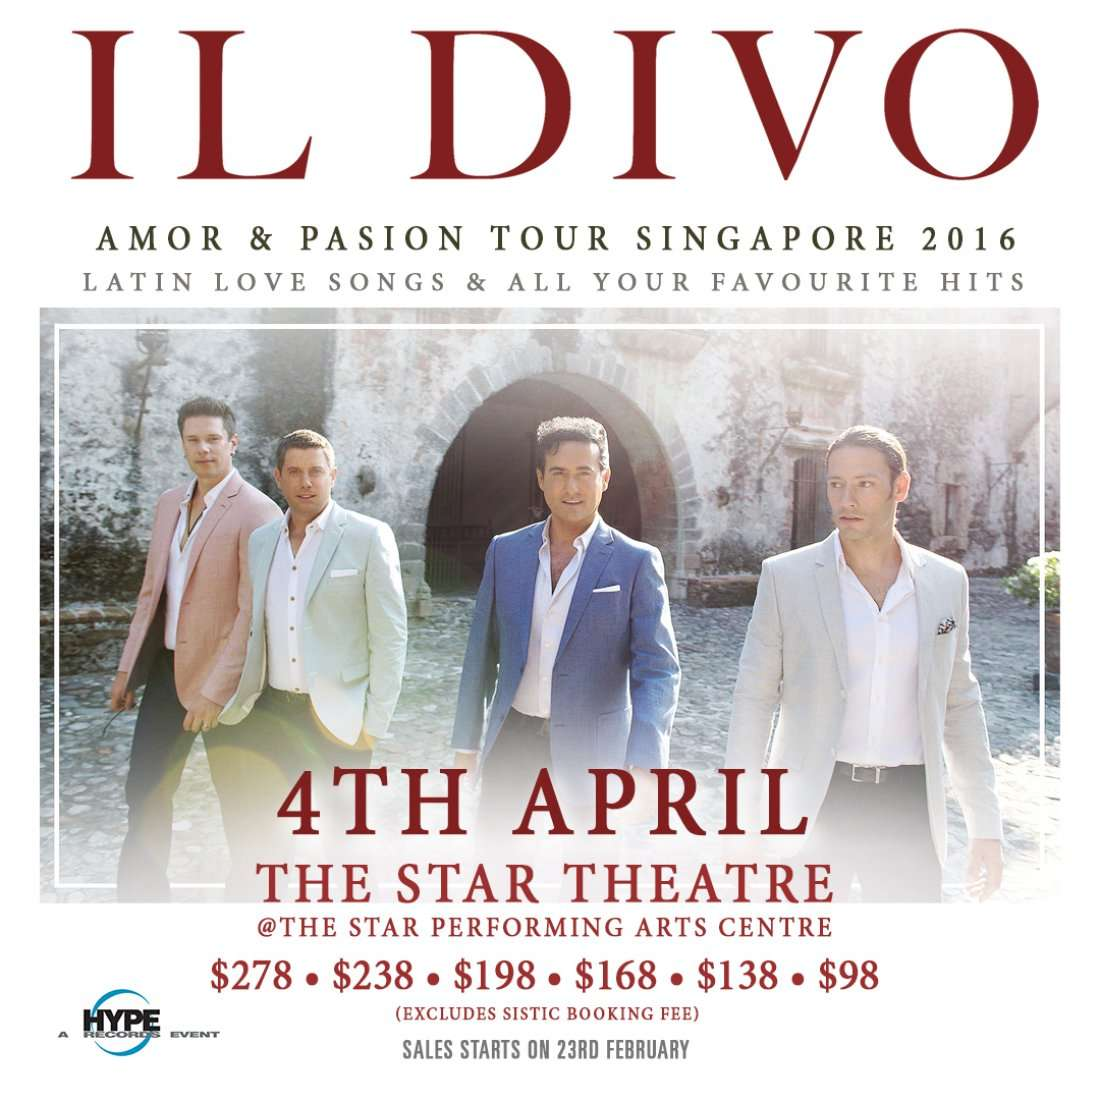 Il divo amor pasion tour singapore 2016 at the star - Il divo meaning ...